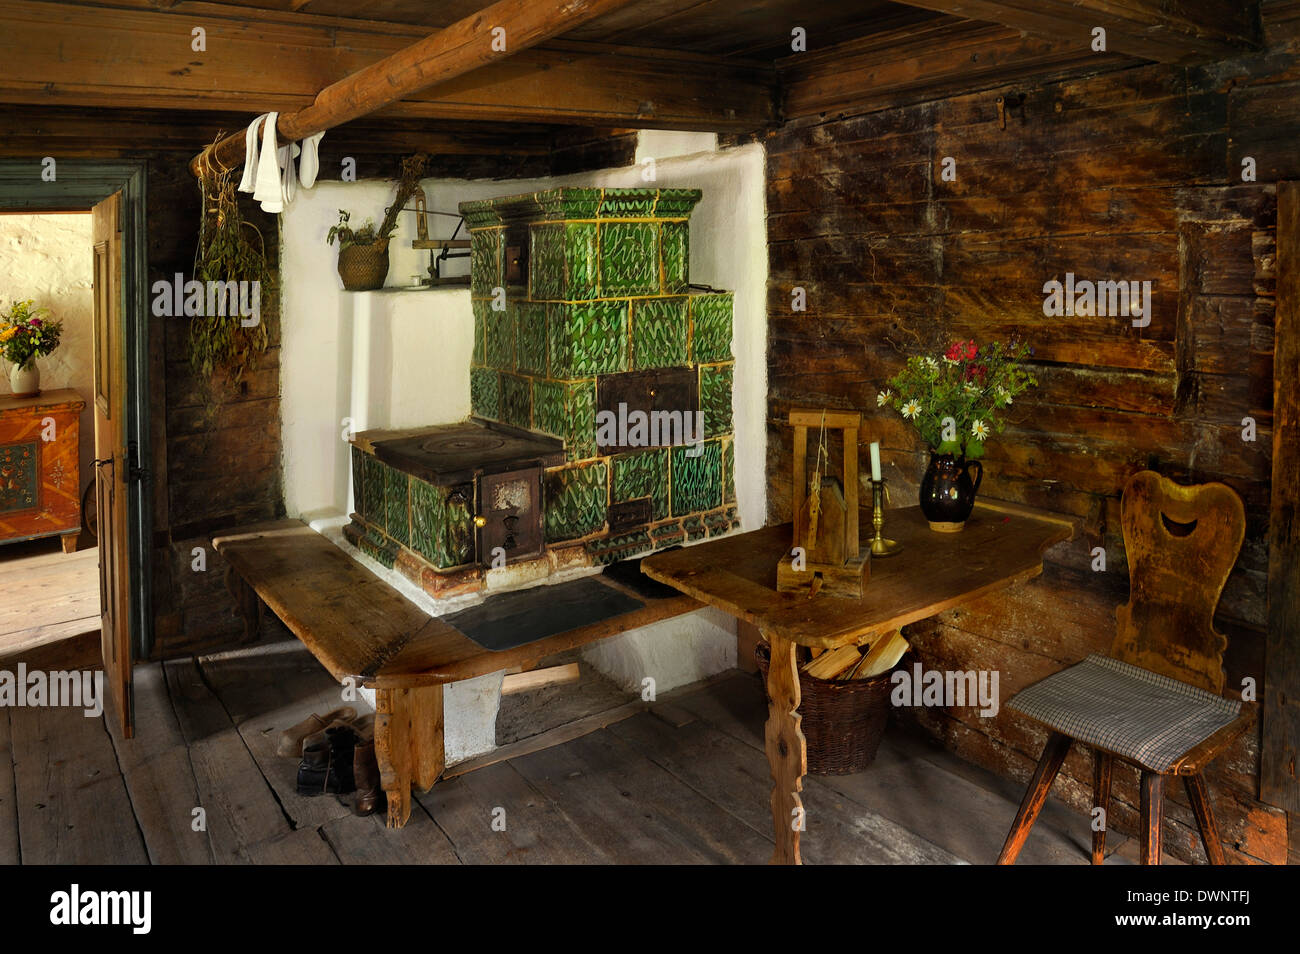 Living room with a tiled stove in Markus Wasmeier Farm and Winter Sports Museum, Schliersee, Upper Bavaria, Bavaria, Germany - Stock Image